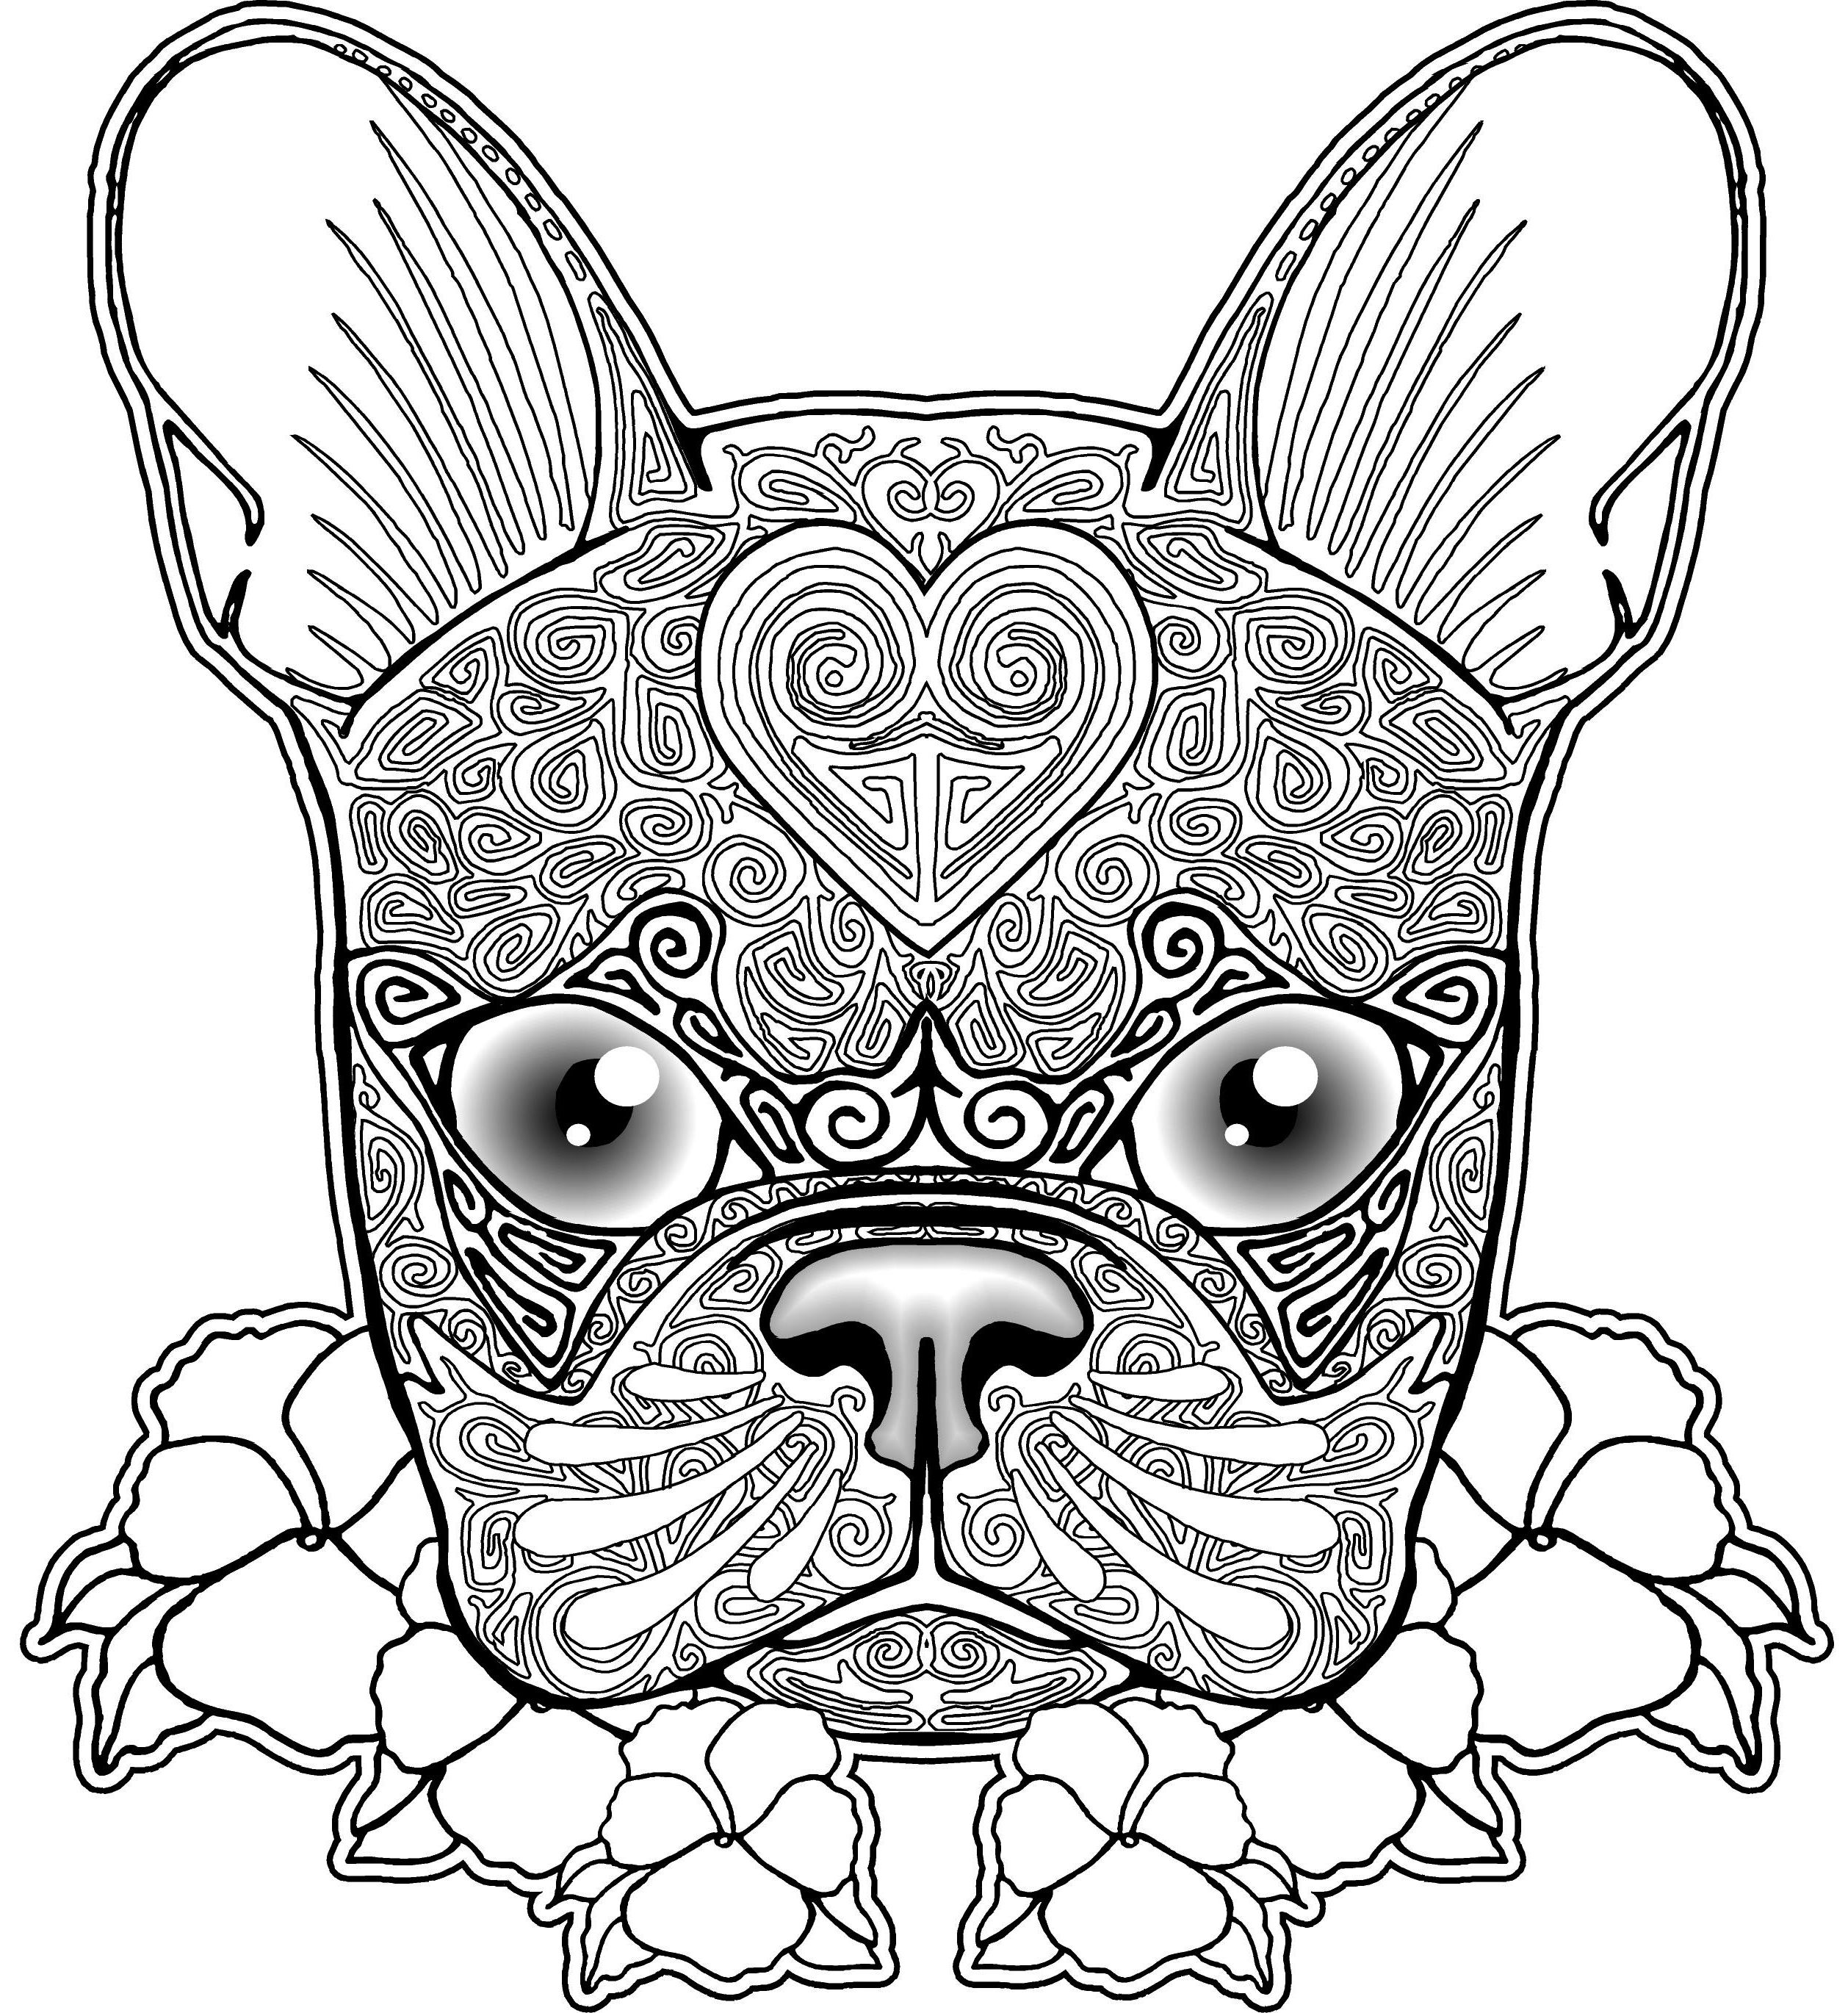 dog color page cute dog coloring pages to download and print for free page color dog